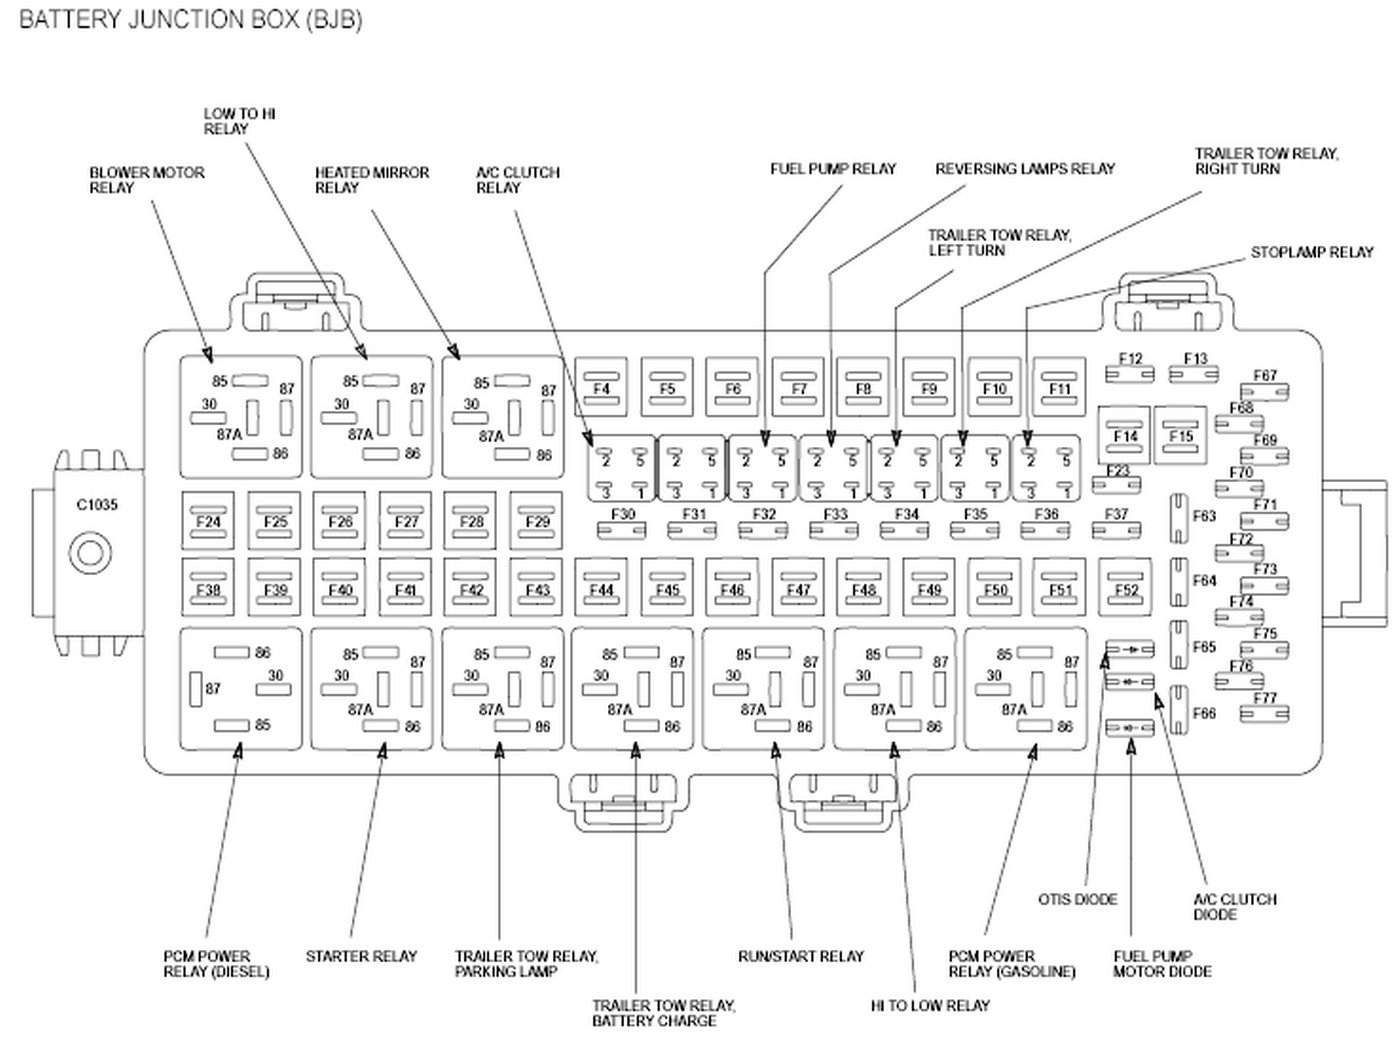 2008 ford f250 super duty fuse panel diagram www. Black Bedroom Furniture Sets. Home Design Ideas